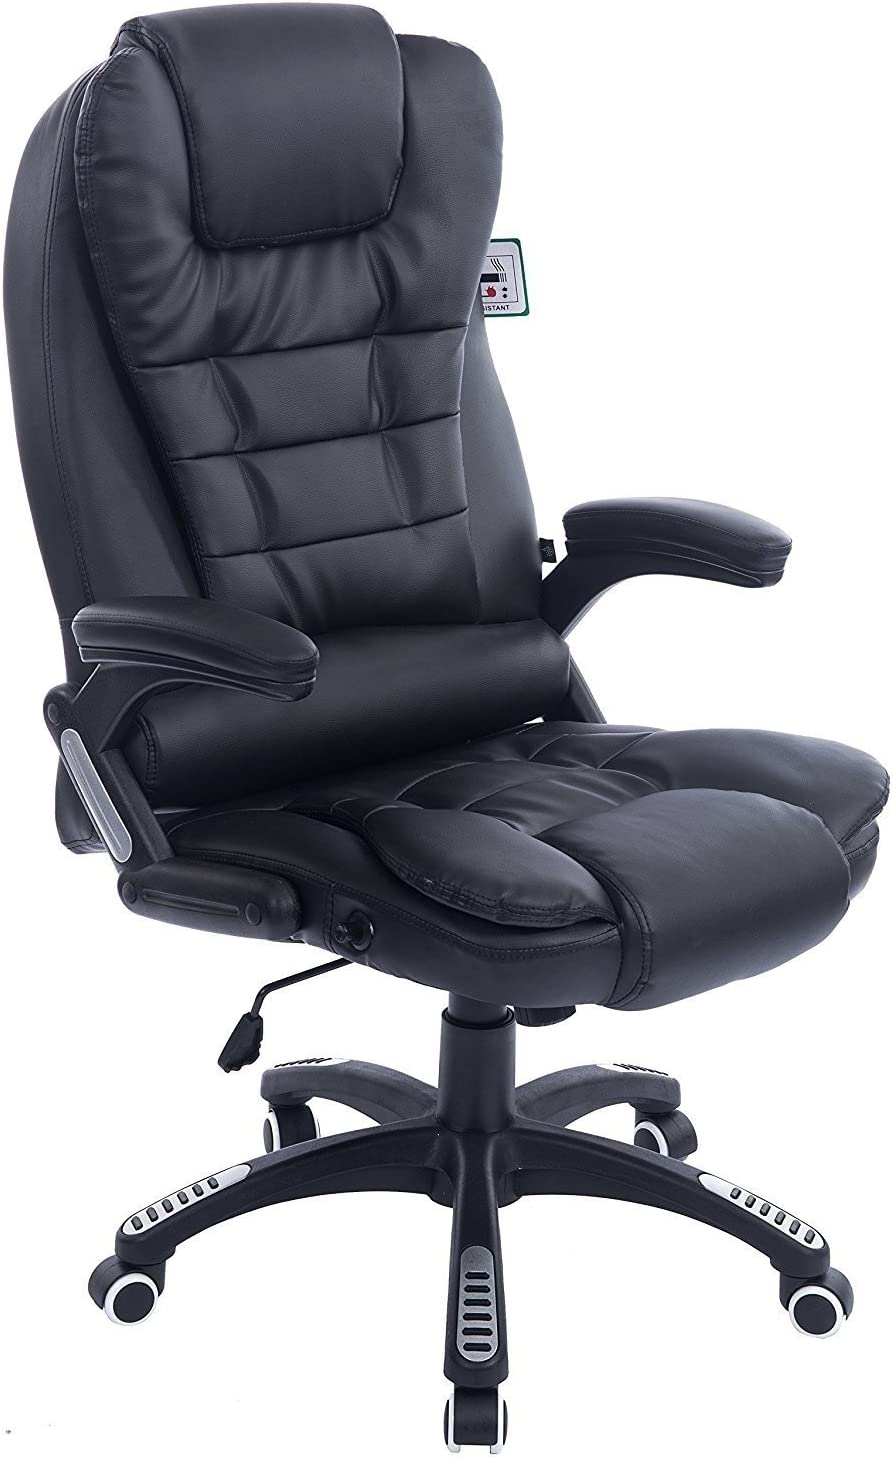 Cherry Tree Executive Recline Extra Padded Office Chair